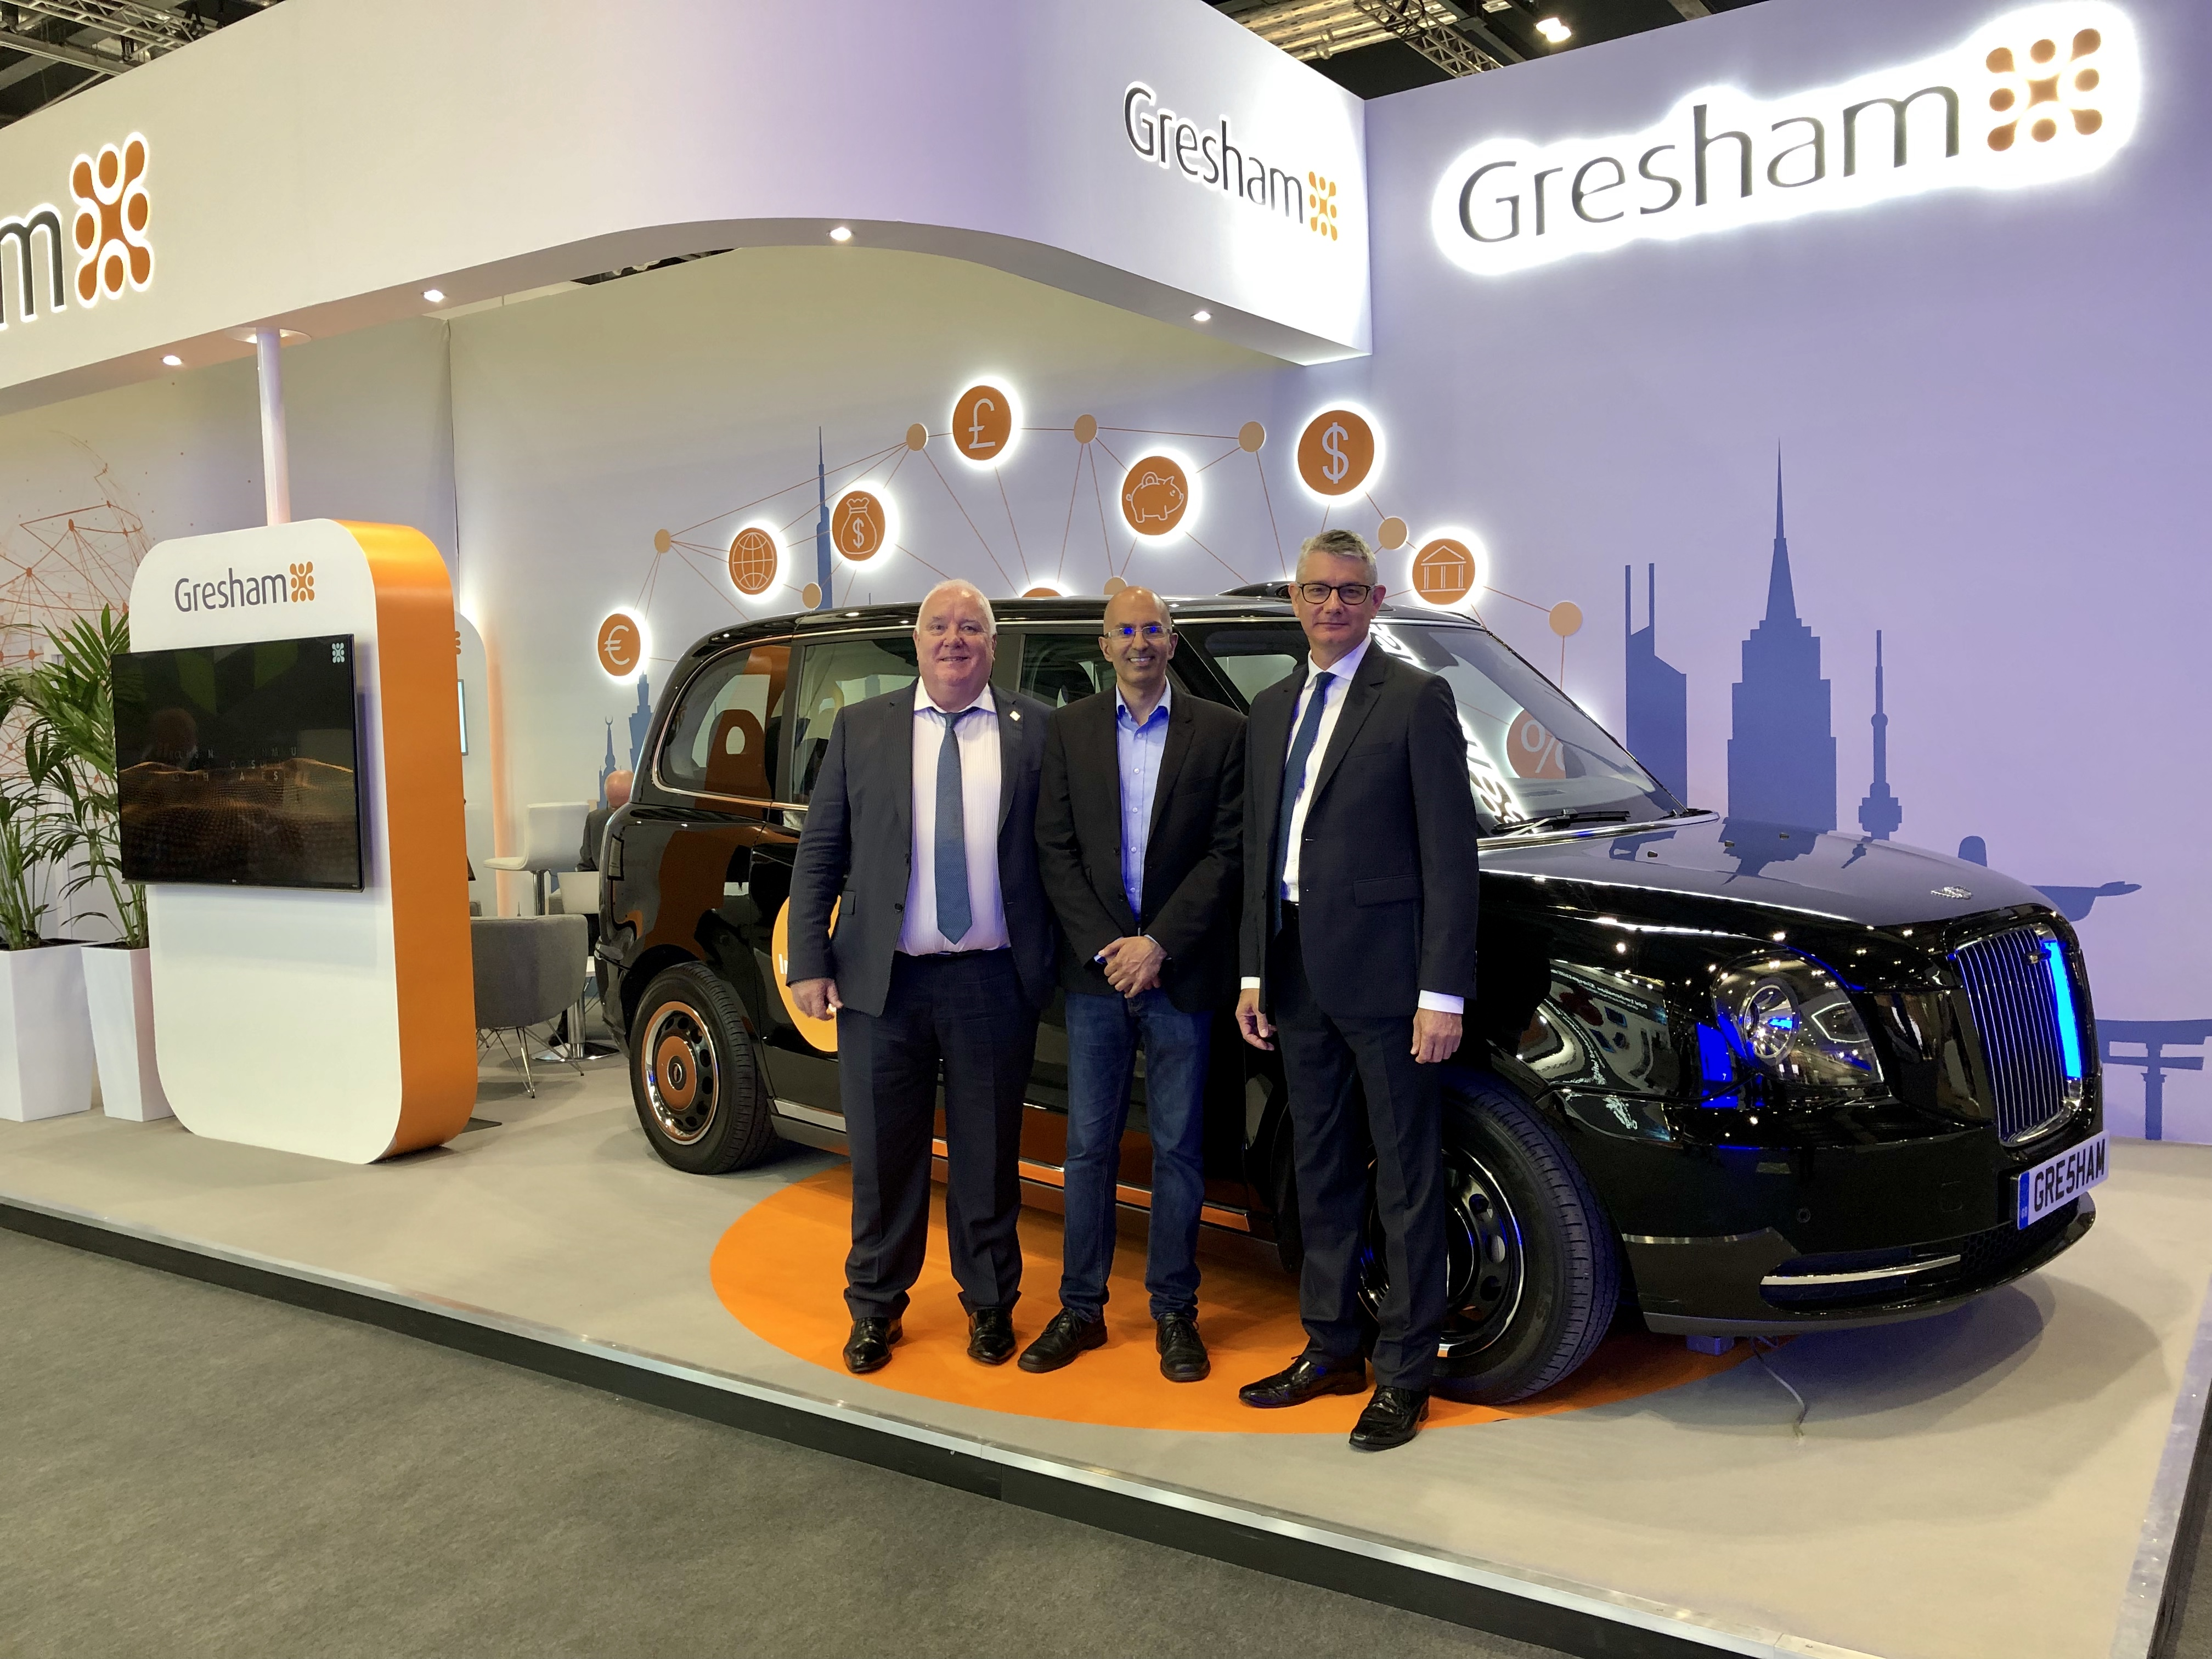 Gresham and AccessPay partnership to accelerate global adoption of Clareti Multi Bank services